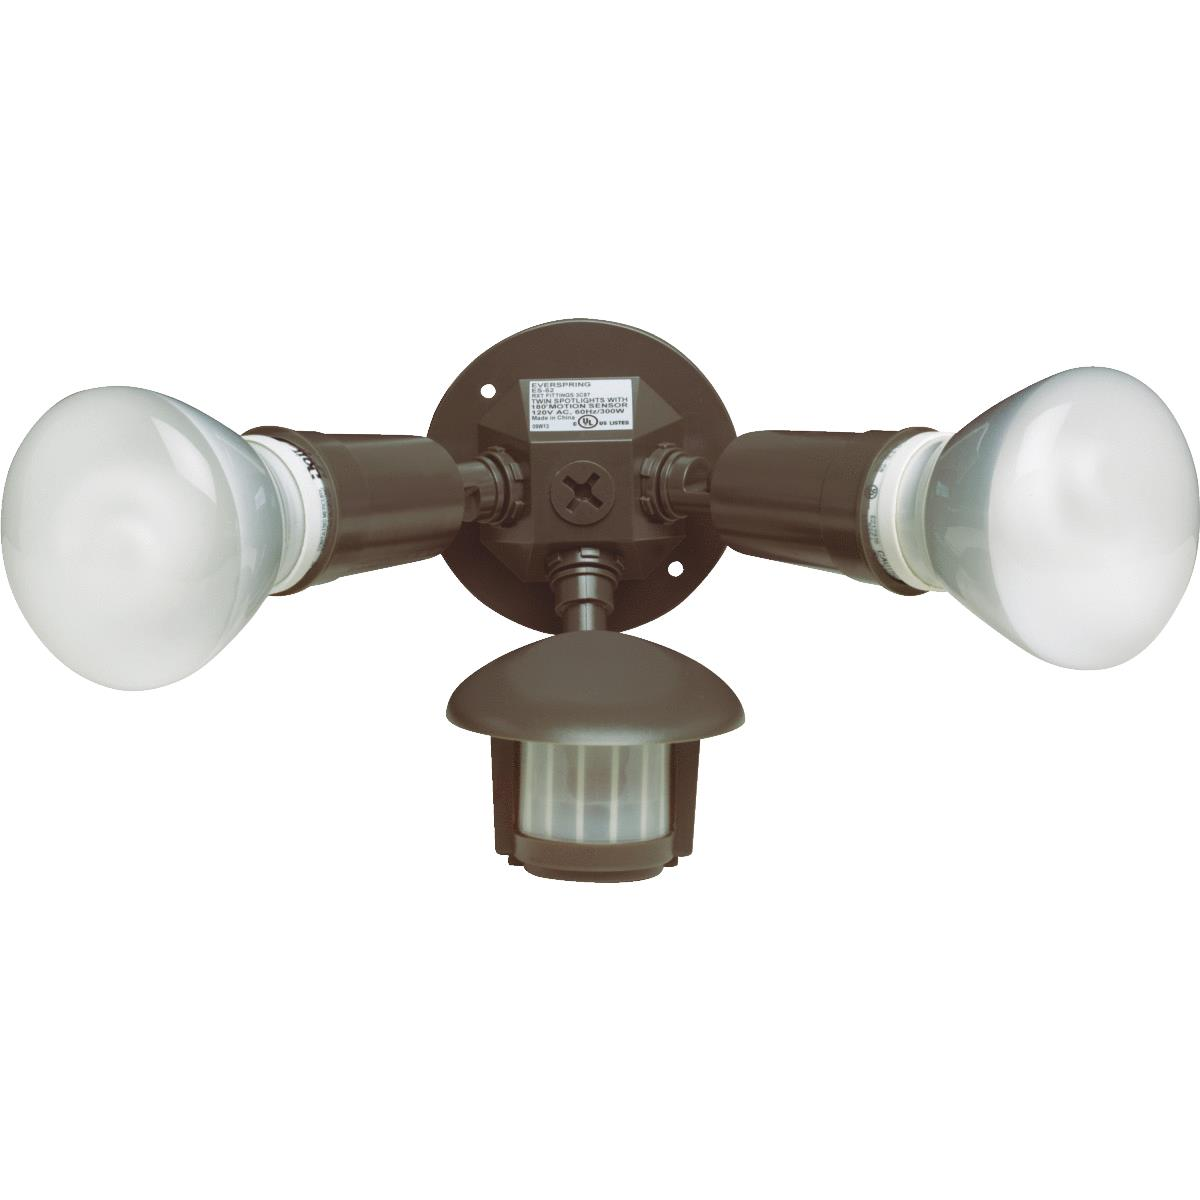 180-Degree Non-Metallic Incandescent Motion Floodlight Fixture